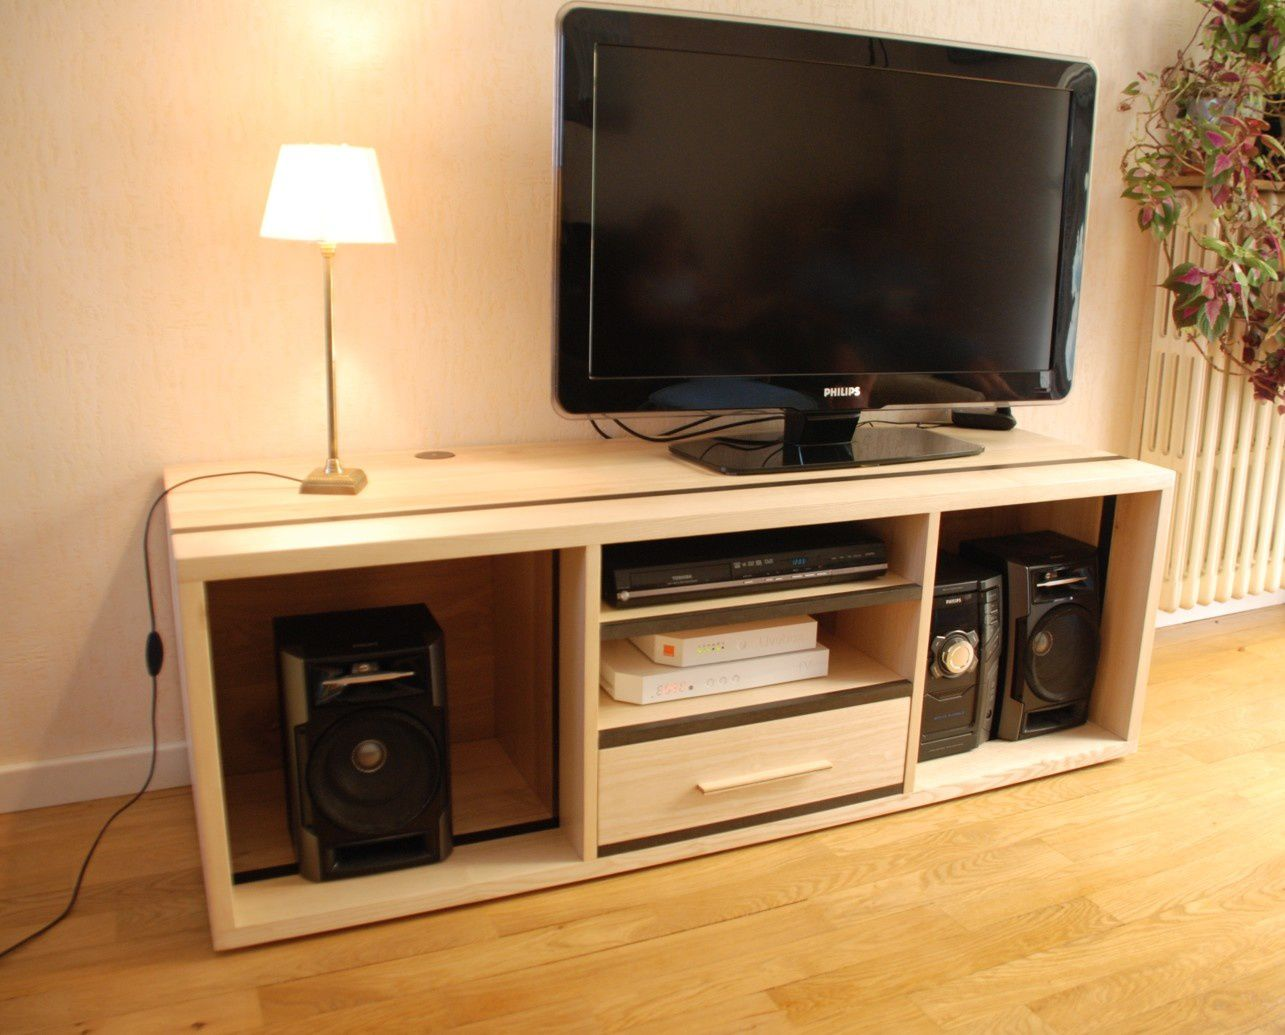 Album meuble tv hifi contemporain atelier pourquoi pas - Meubles tv contemporain ...